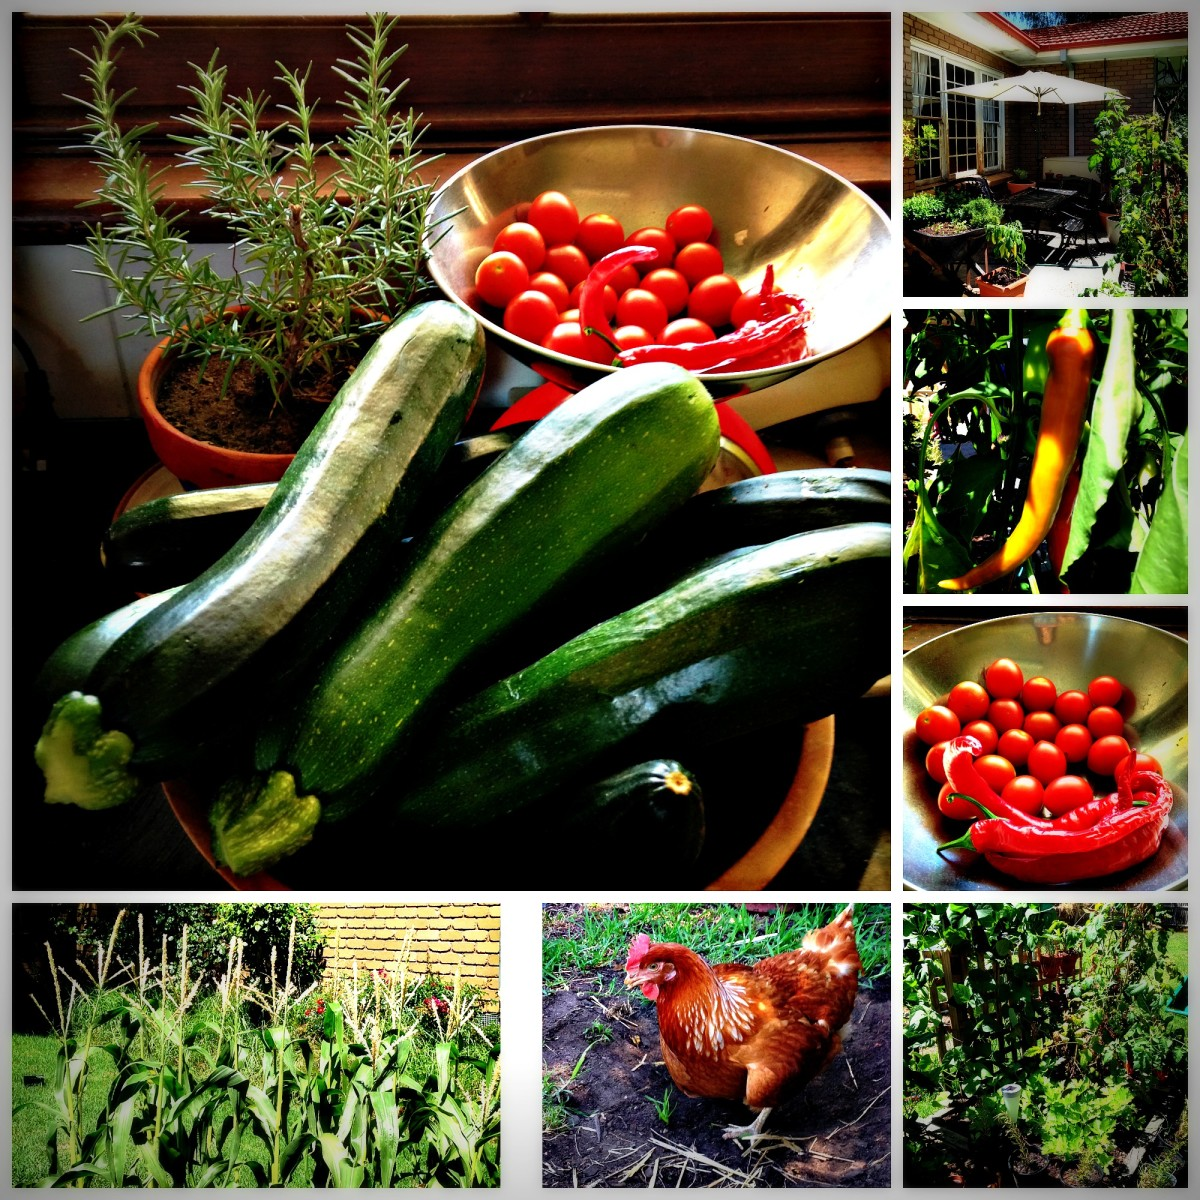 Backyard or micro-farming is easier than you think and has incredible benefits.